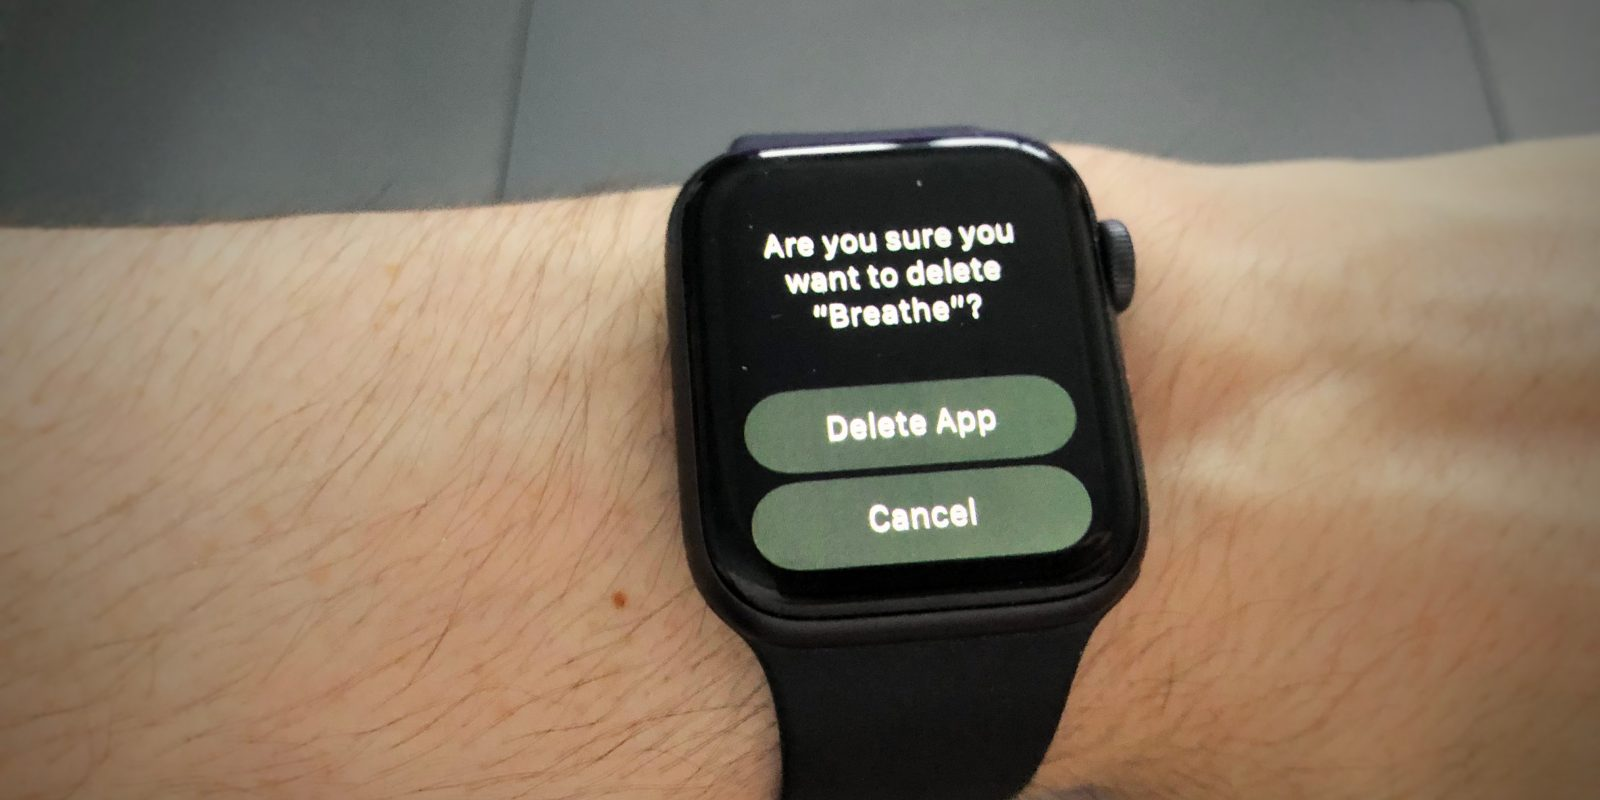 f0fbda6c7 With the release of watchOS 6 beta 3, Apple Watch owners are now able to  delete (some) stock apps from their devices, allowing users to clean up  their ...